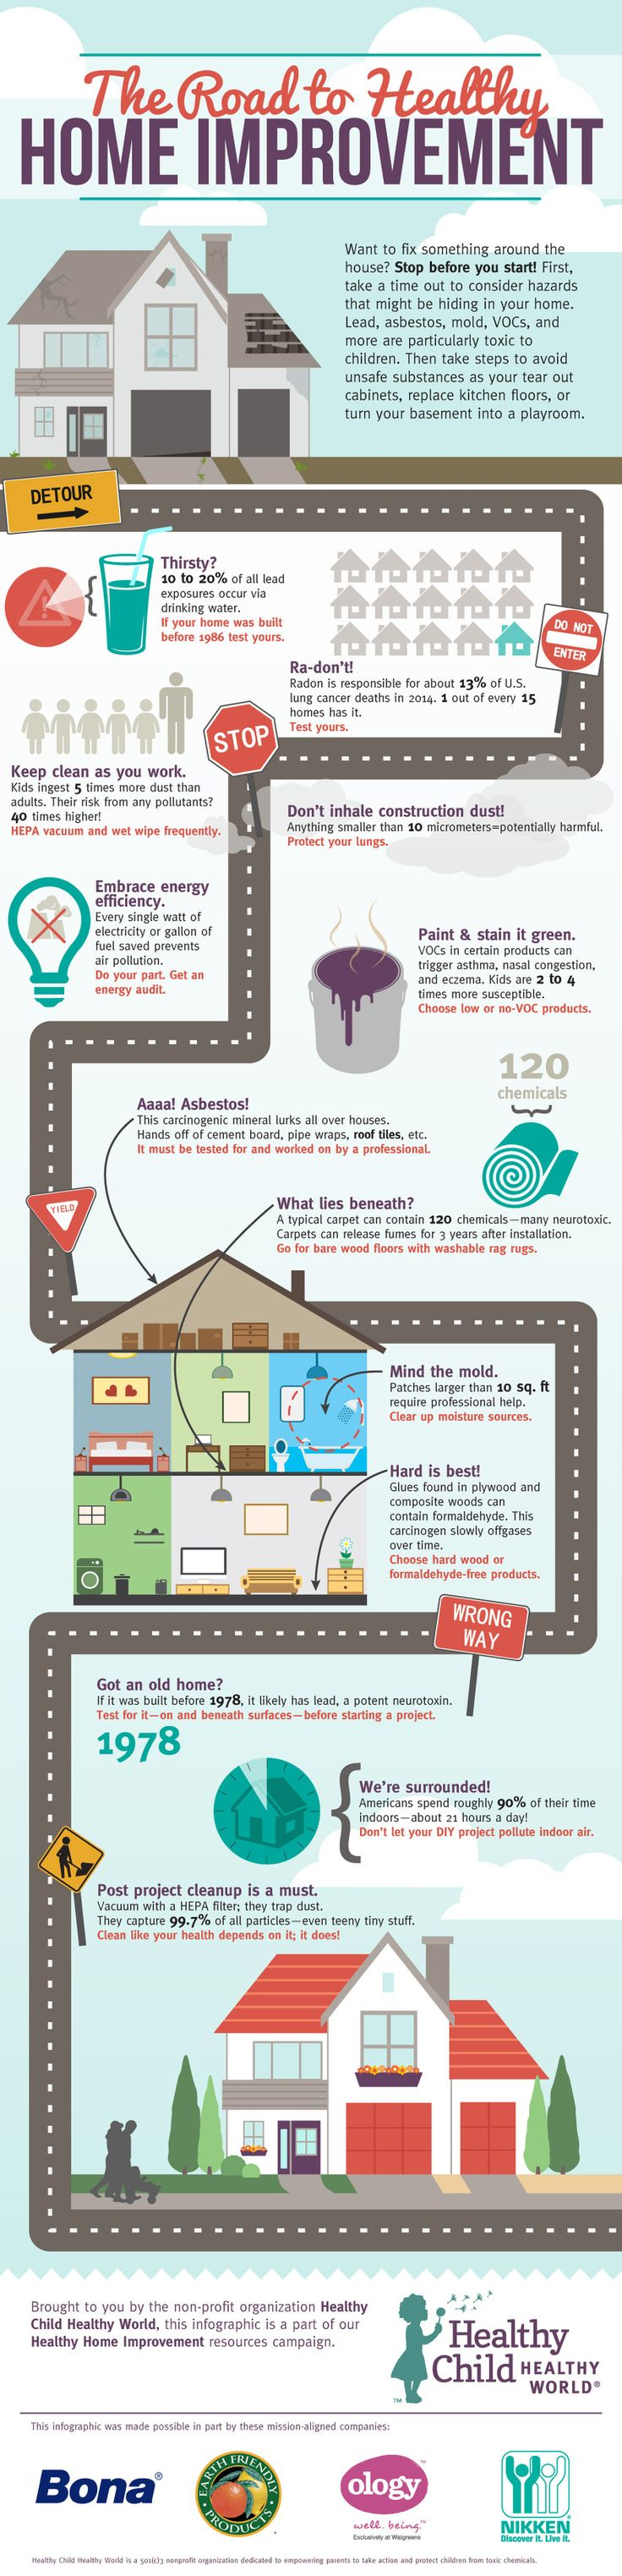 A Non-Toxic Guide To Renovating Your Home (Infographic) - mindbodygreen.com